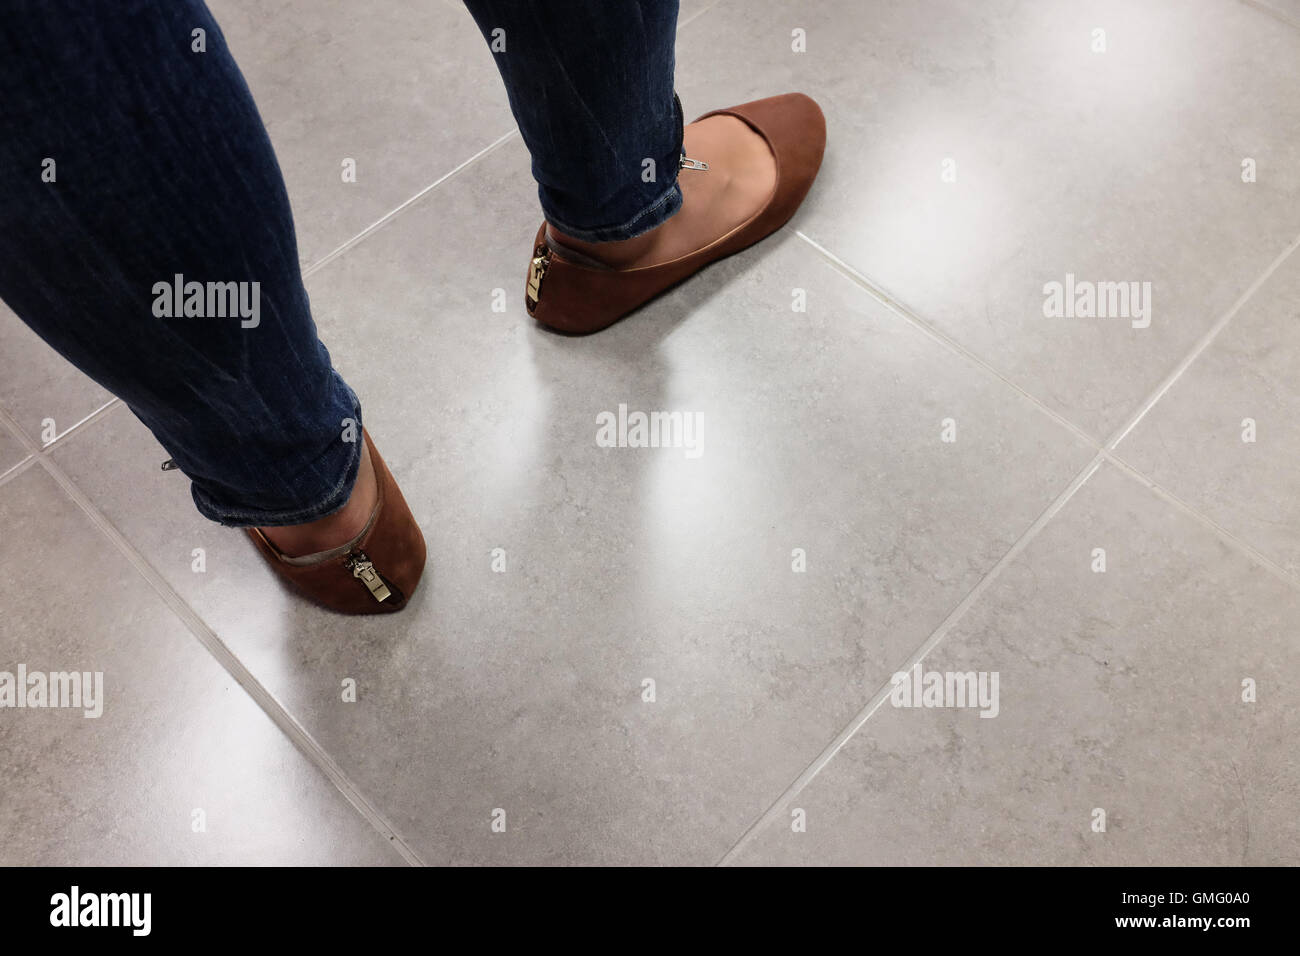 Feet of a woman standing with and zippered shoes - Stock Image